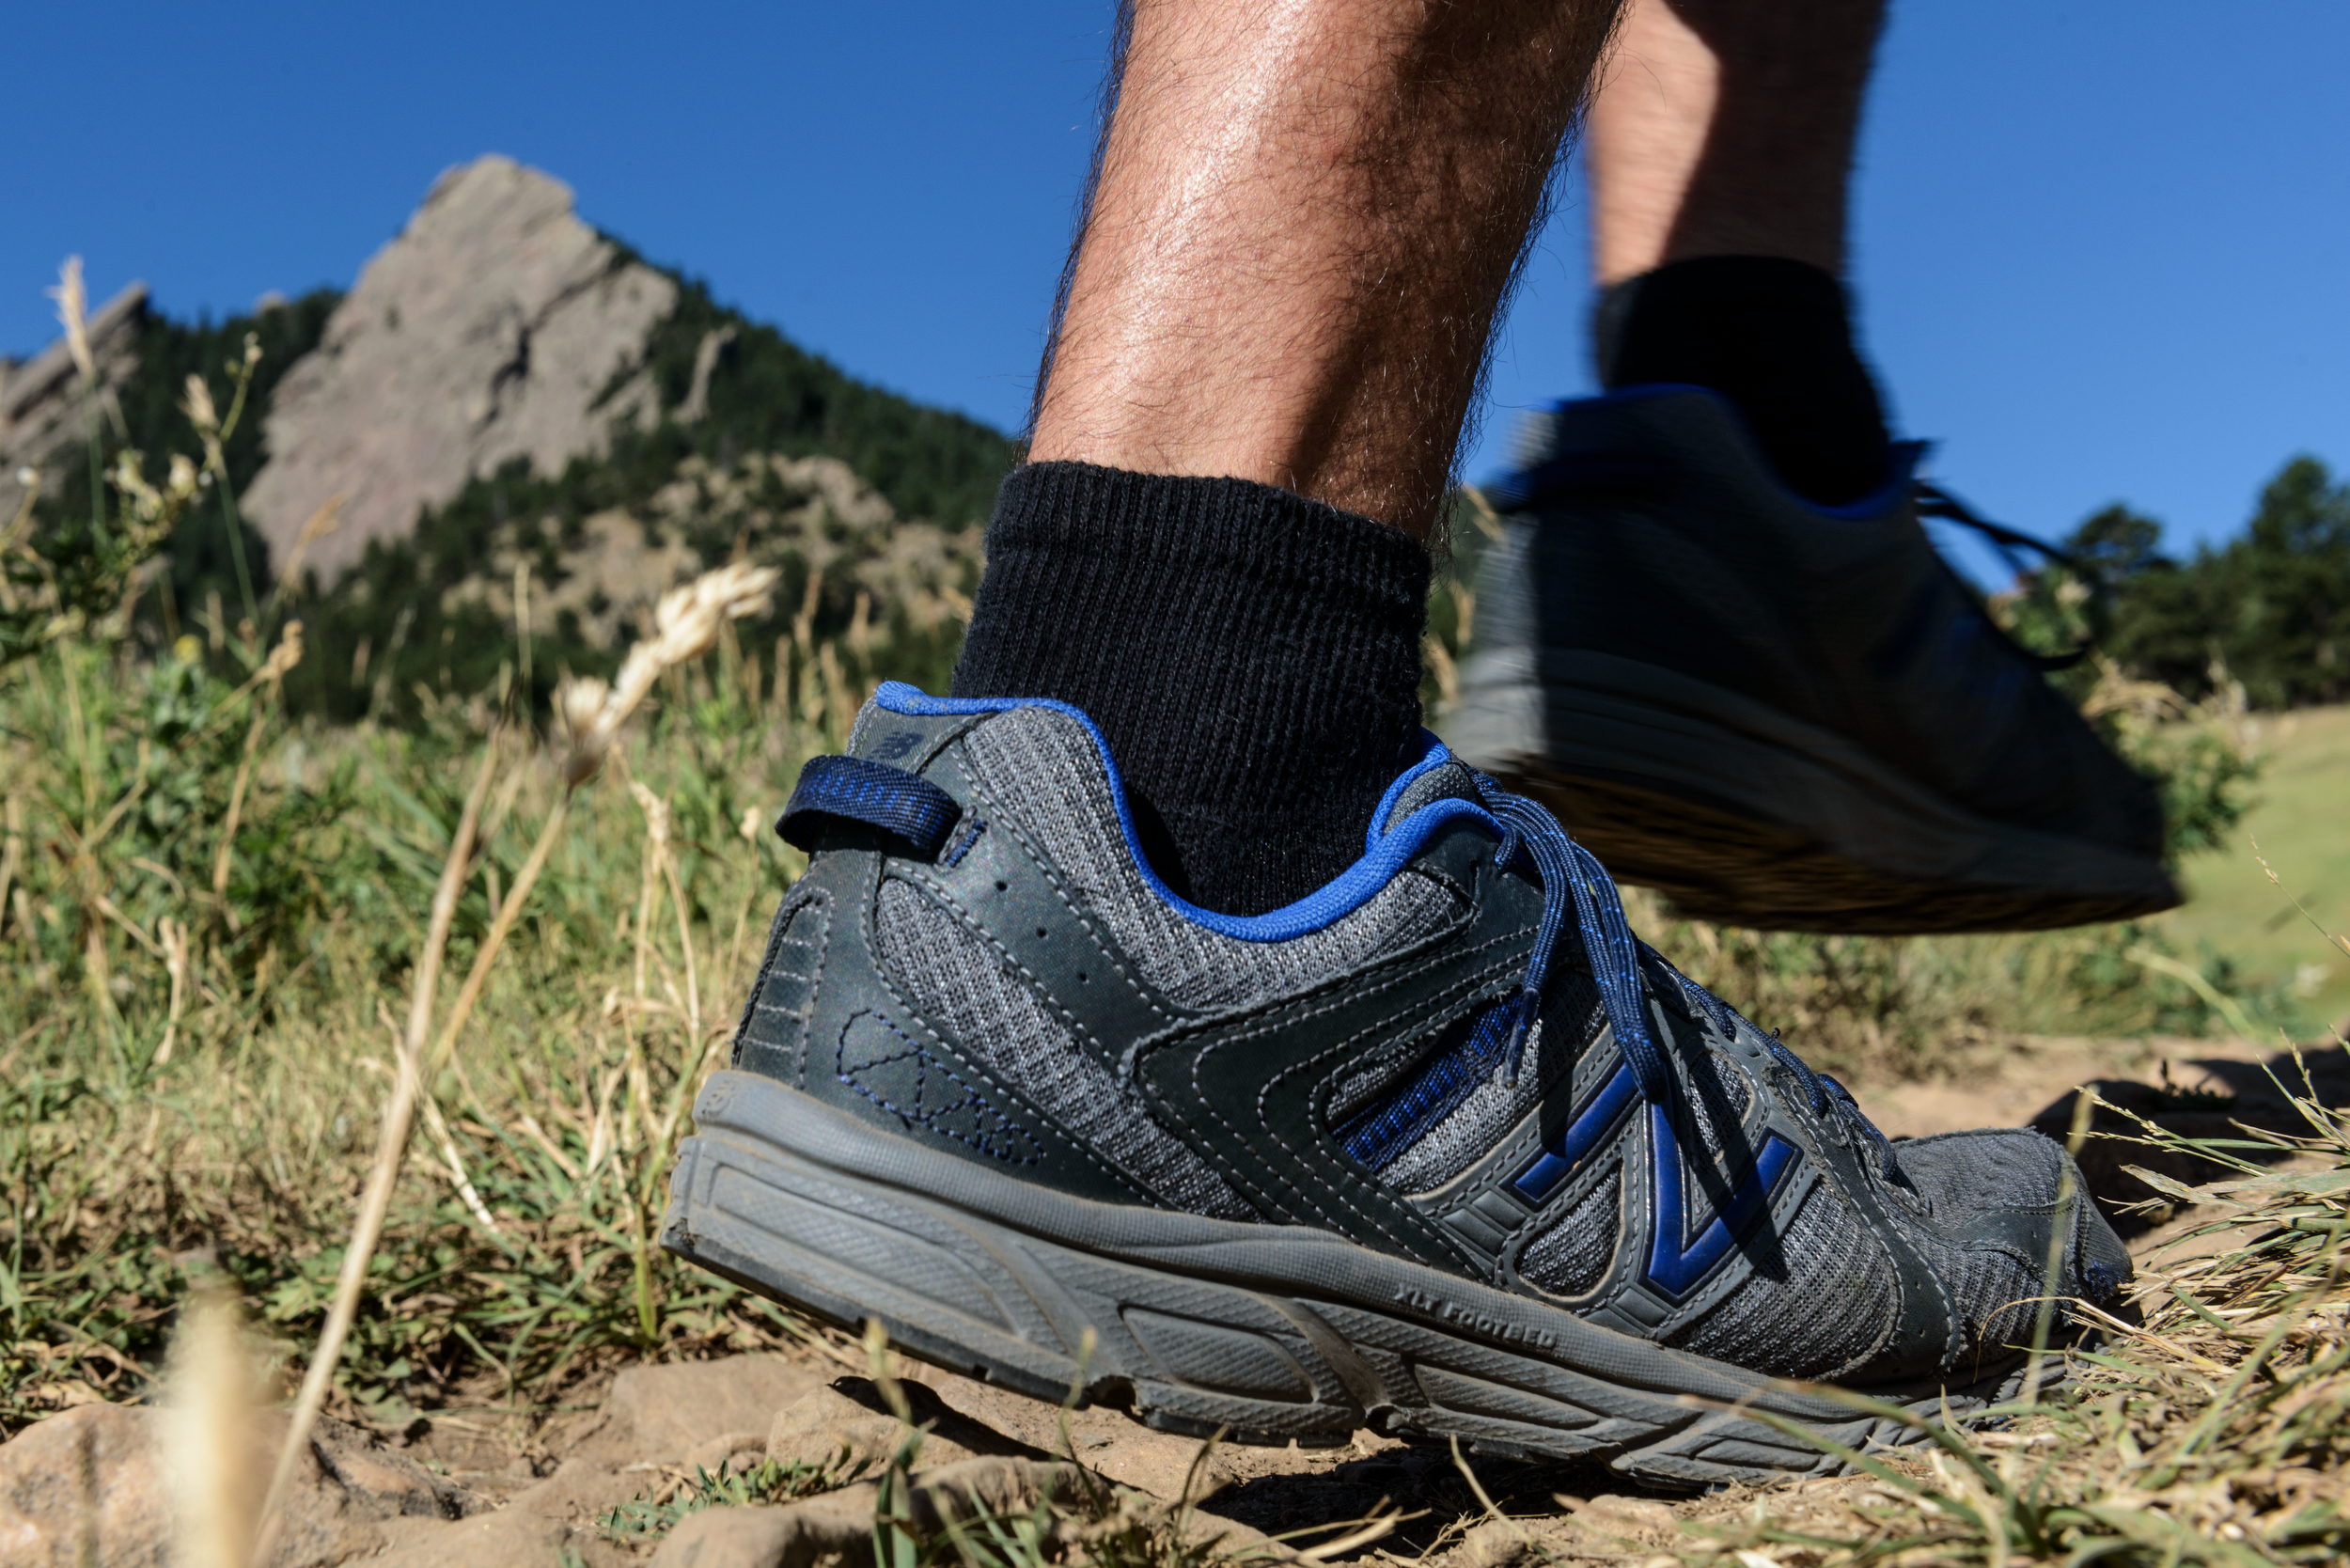 Lifestyle product shot of New Balance Trail running shoes